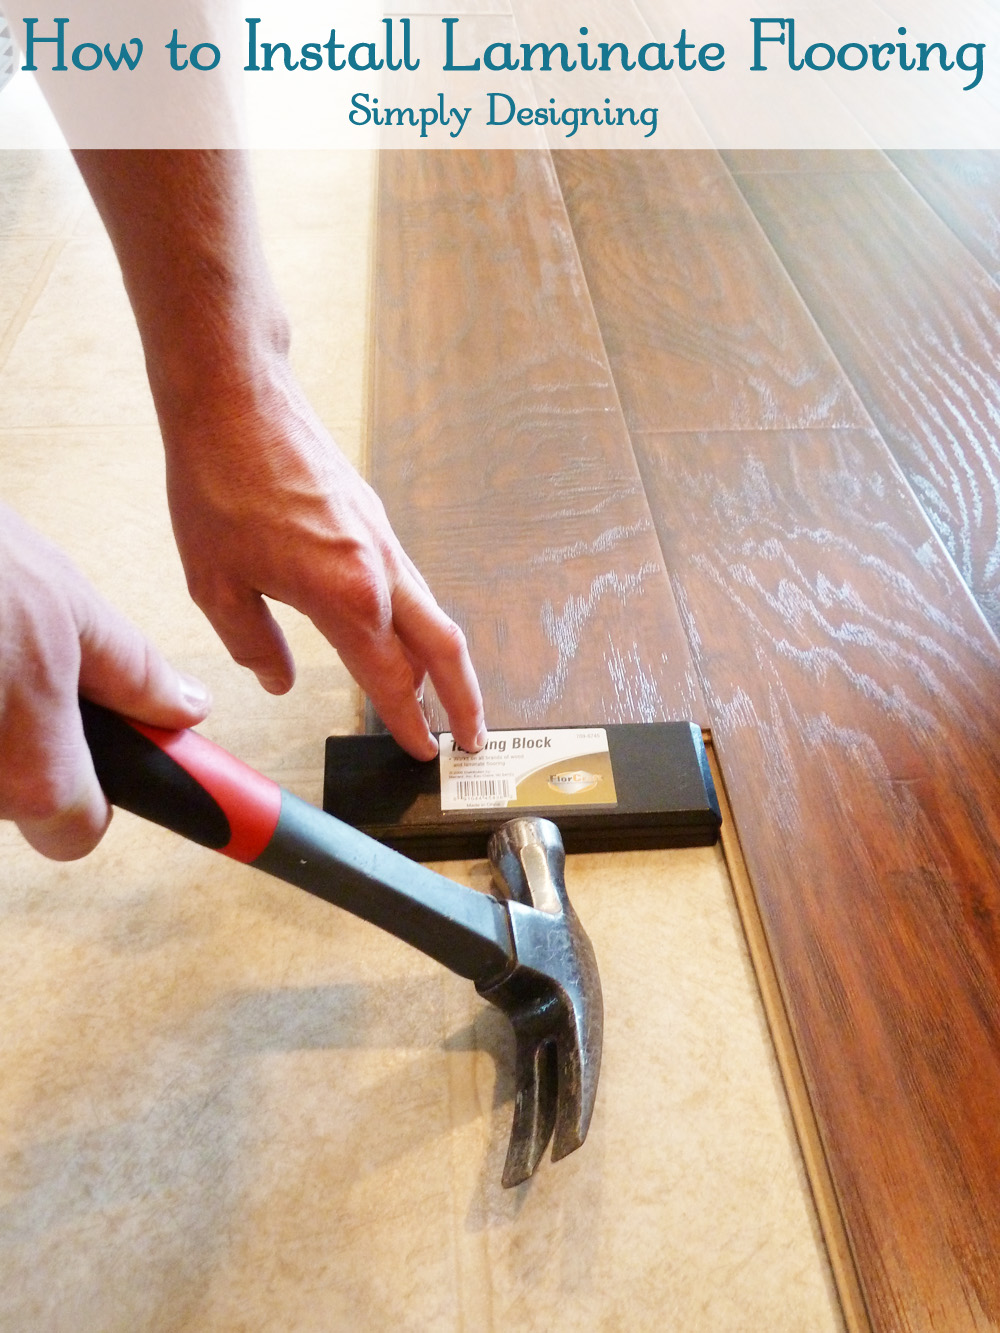 How to Install Laminate Flooring | #diy #flooring #homeimprovement  #laminateflooring | at - How To Install Floating Laminate Wood Flooring {Part 2}: The